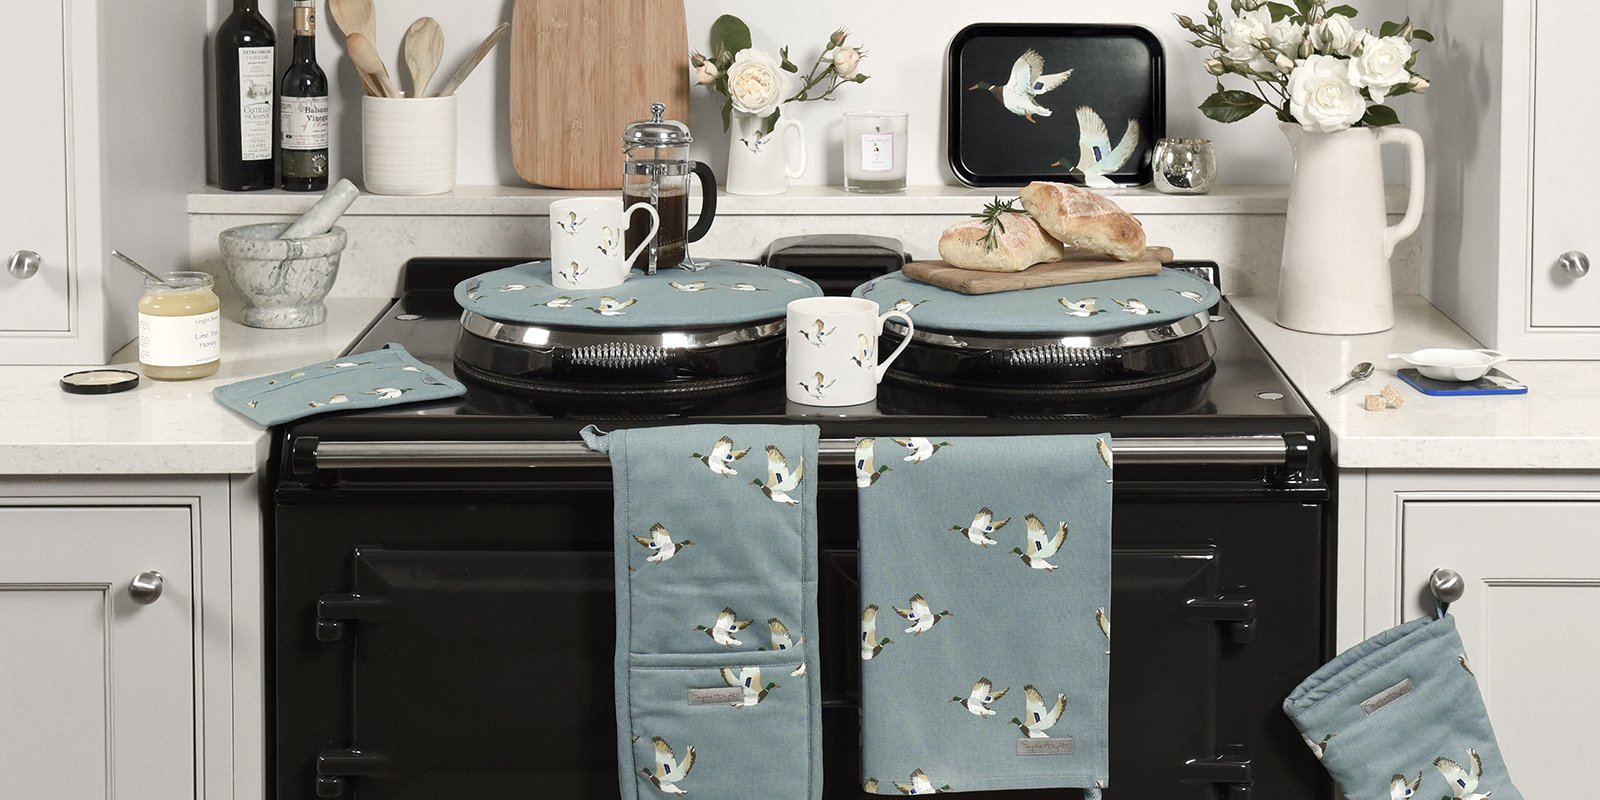 Ducks Design Homeware and Accessories by Sophie Allport